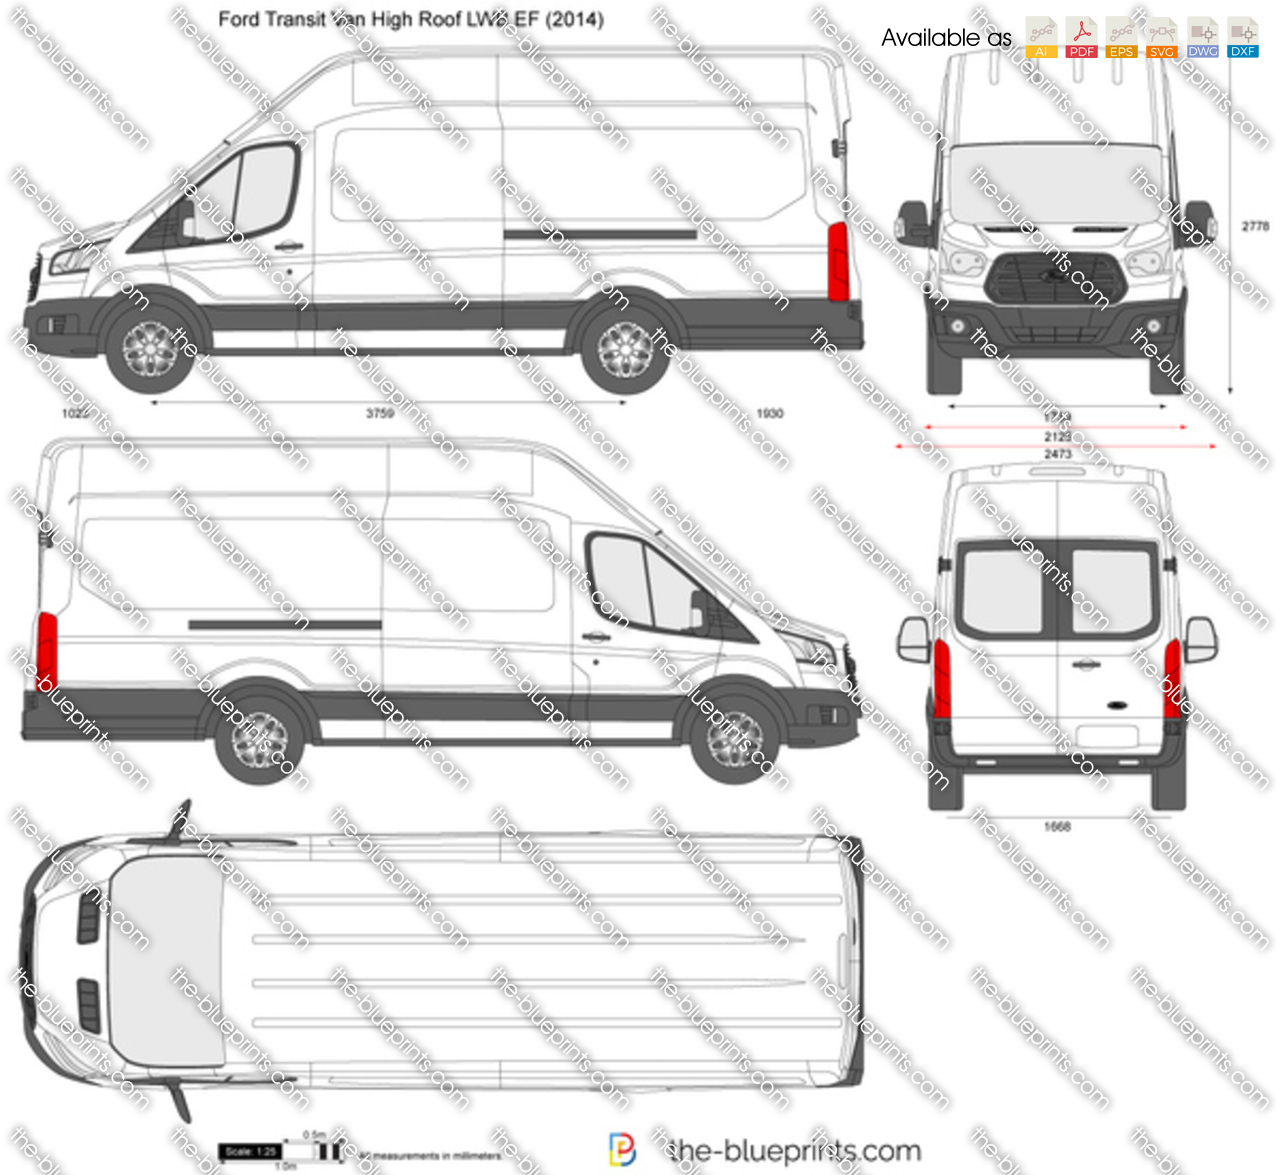 ford transit van high roof lwb ef vector drawing. Black Bedroom Furniture Sets. Home Design Ideas